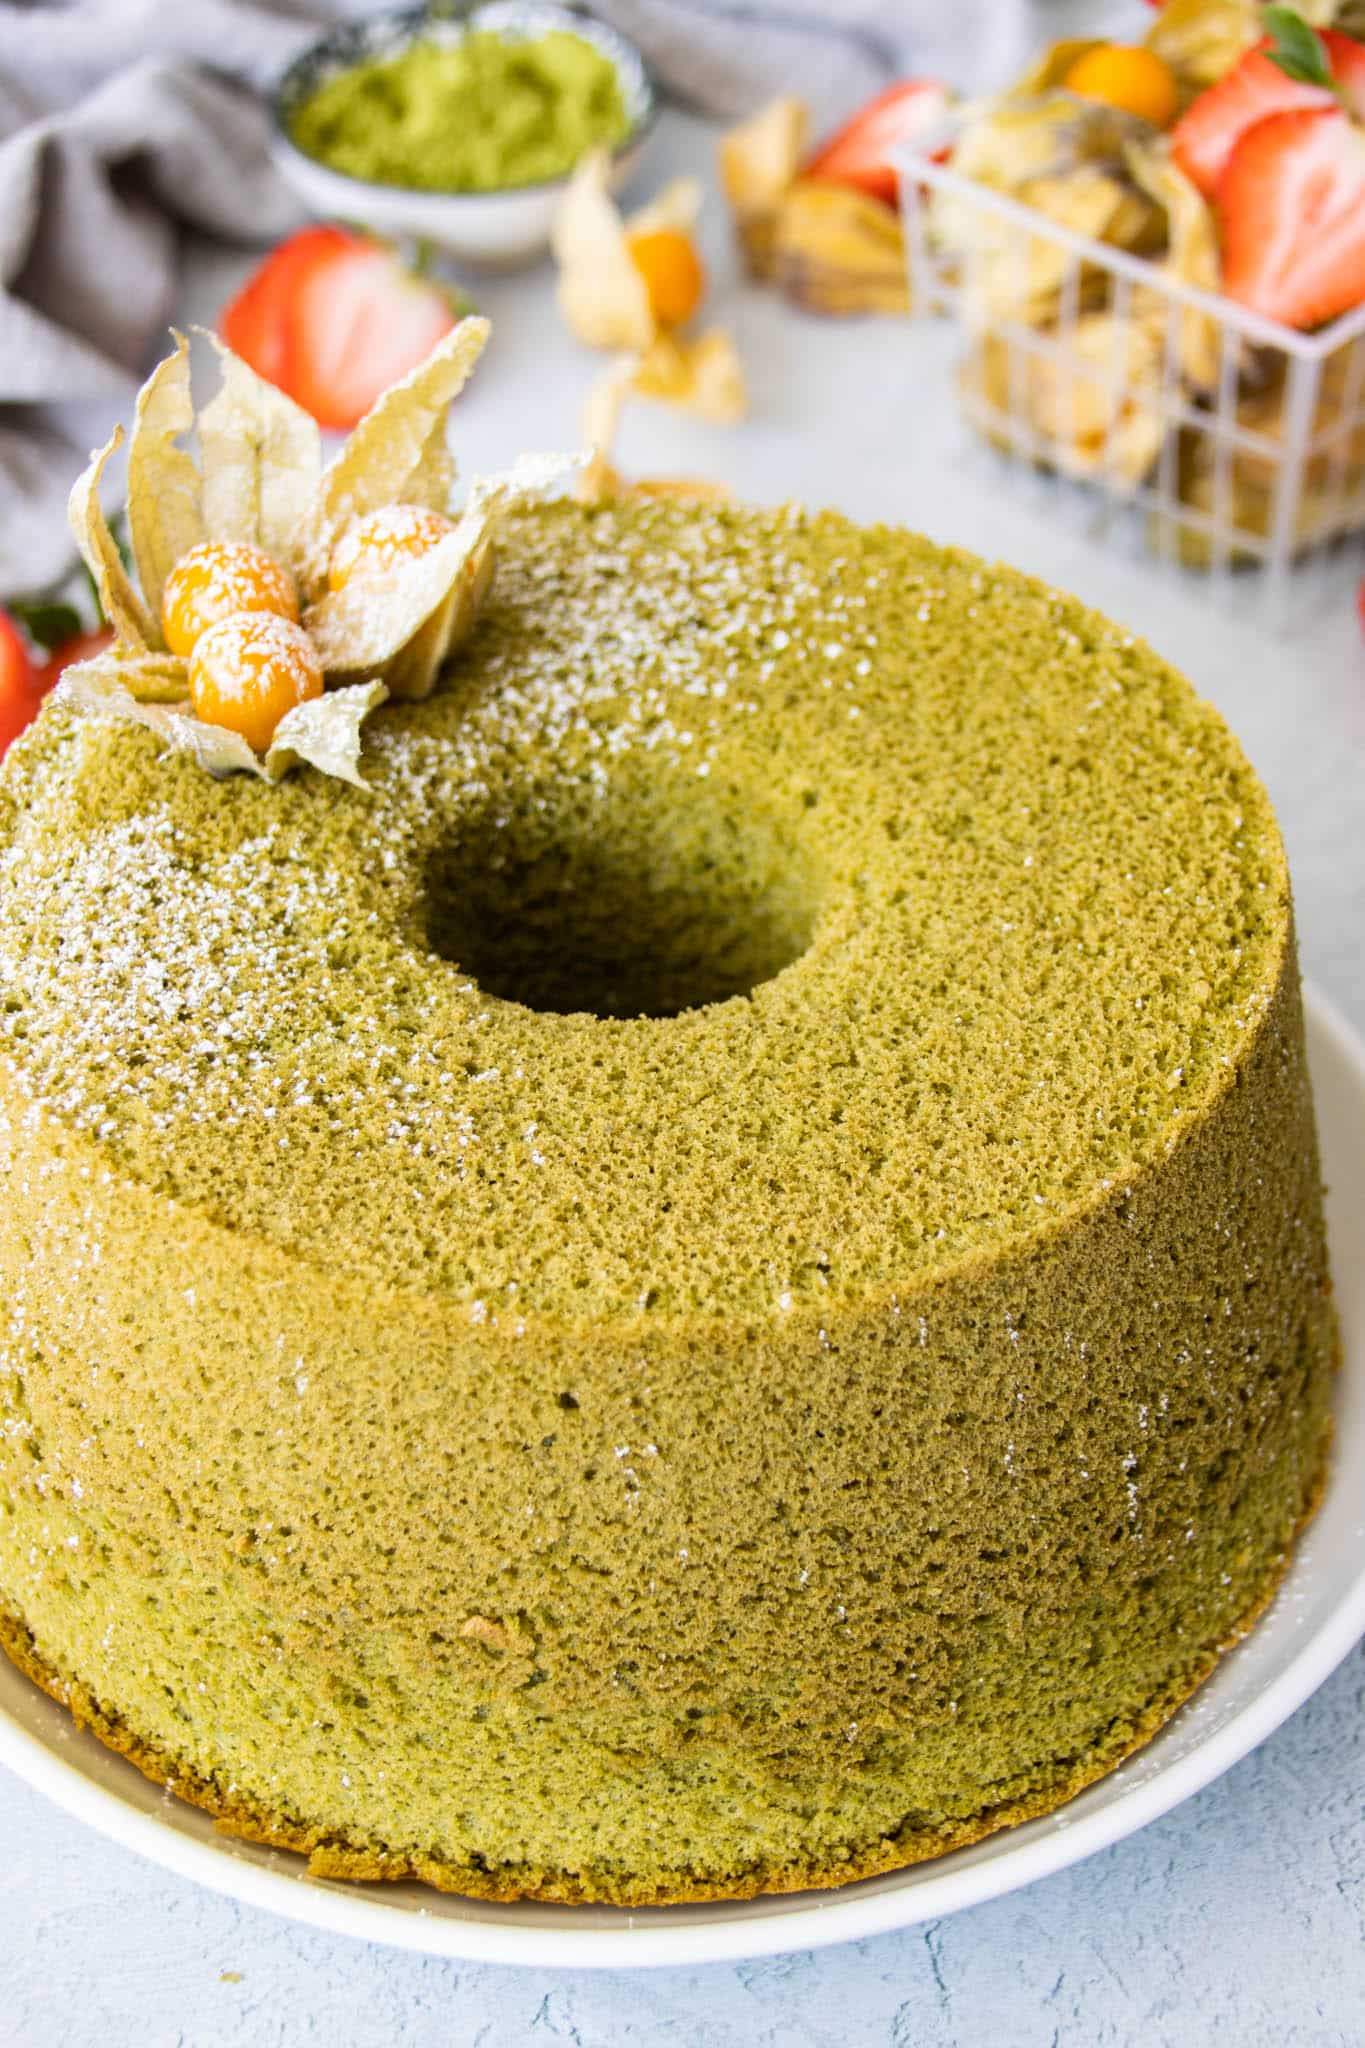 Matcha (green tea) chiffon cake with a light dusting of confectioner's sugar and golden berries